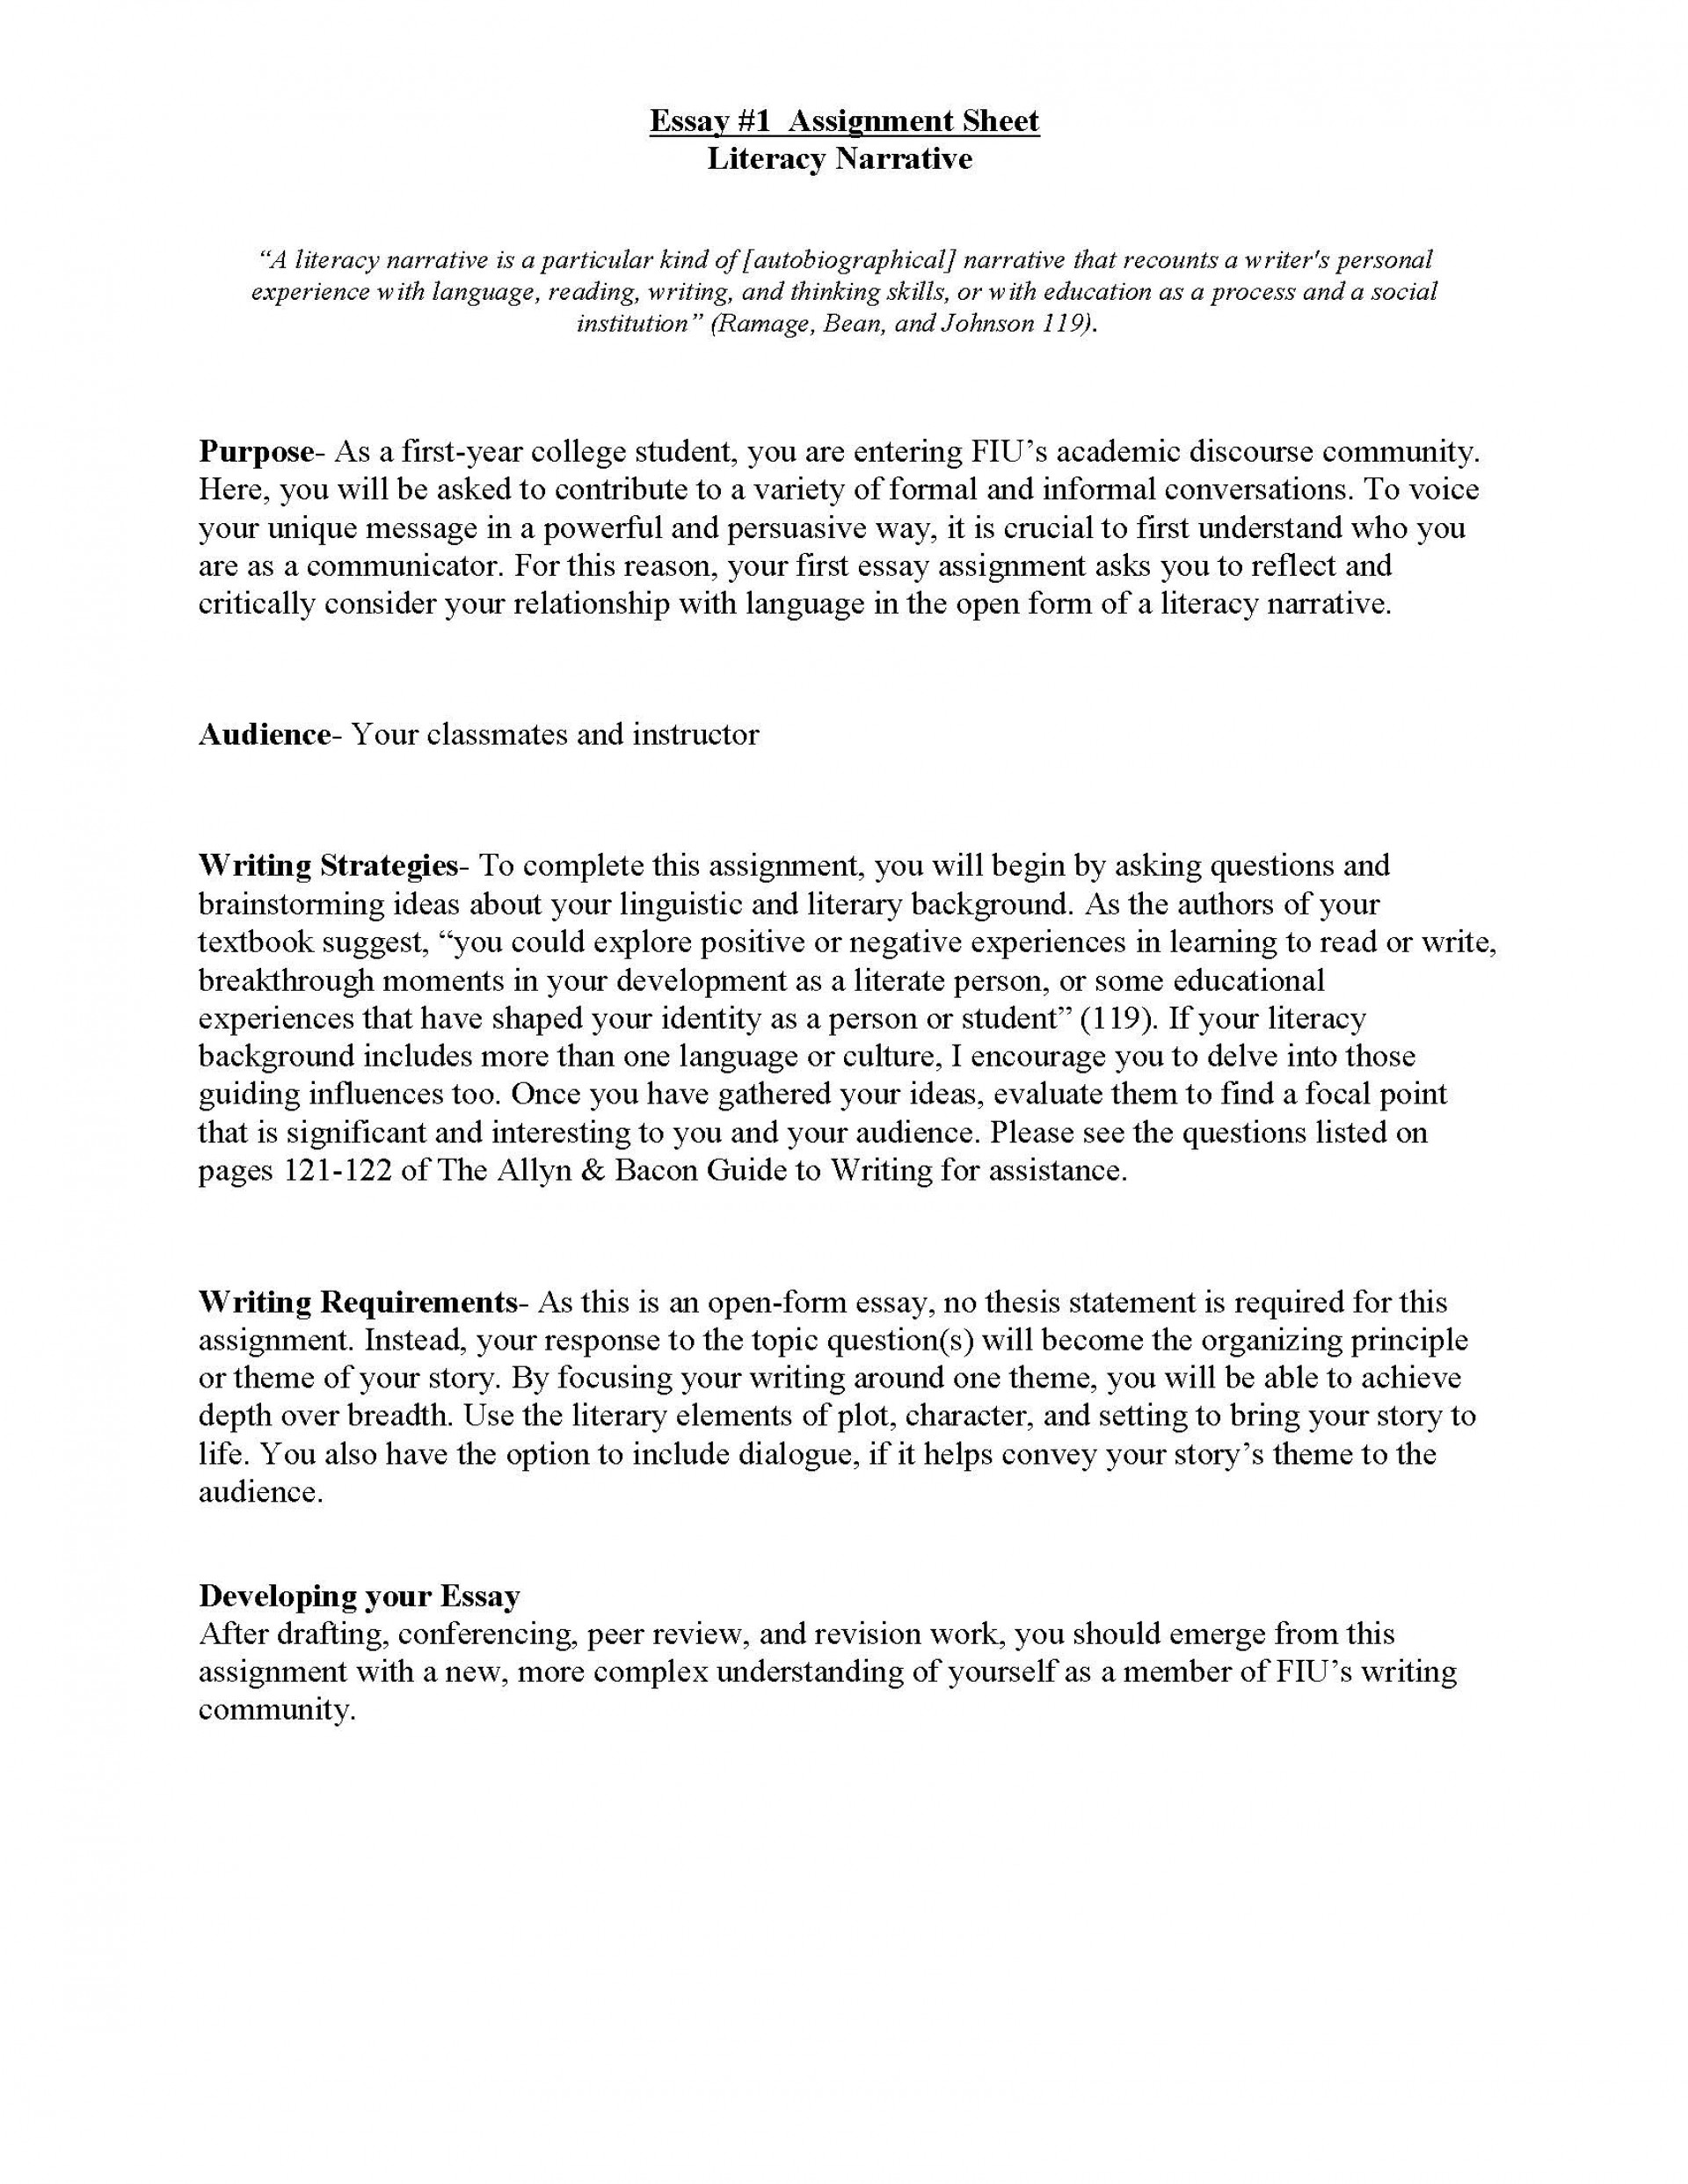 007 Conclusion For Macbeth Essay Ambition Example Literacy Narrative Unit Assignment Spring 2012 Page 1 Best 1920